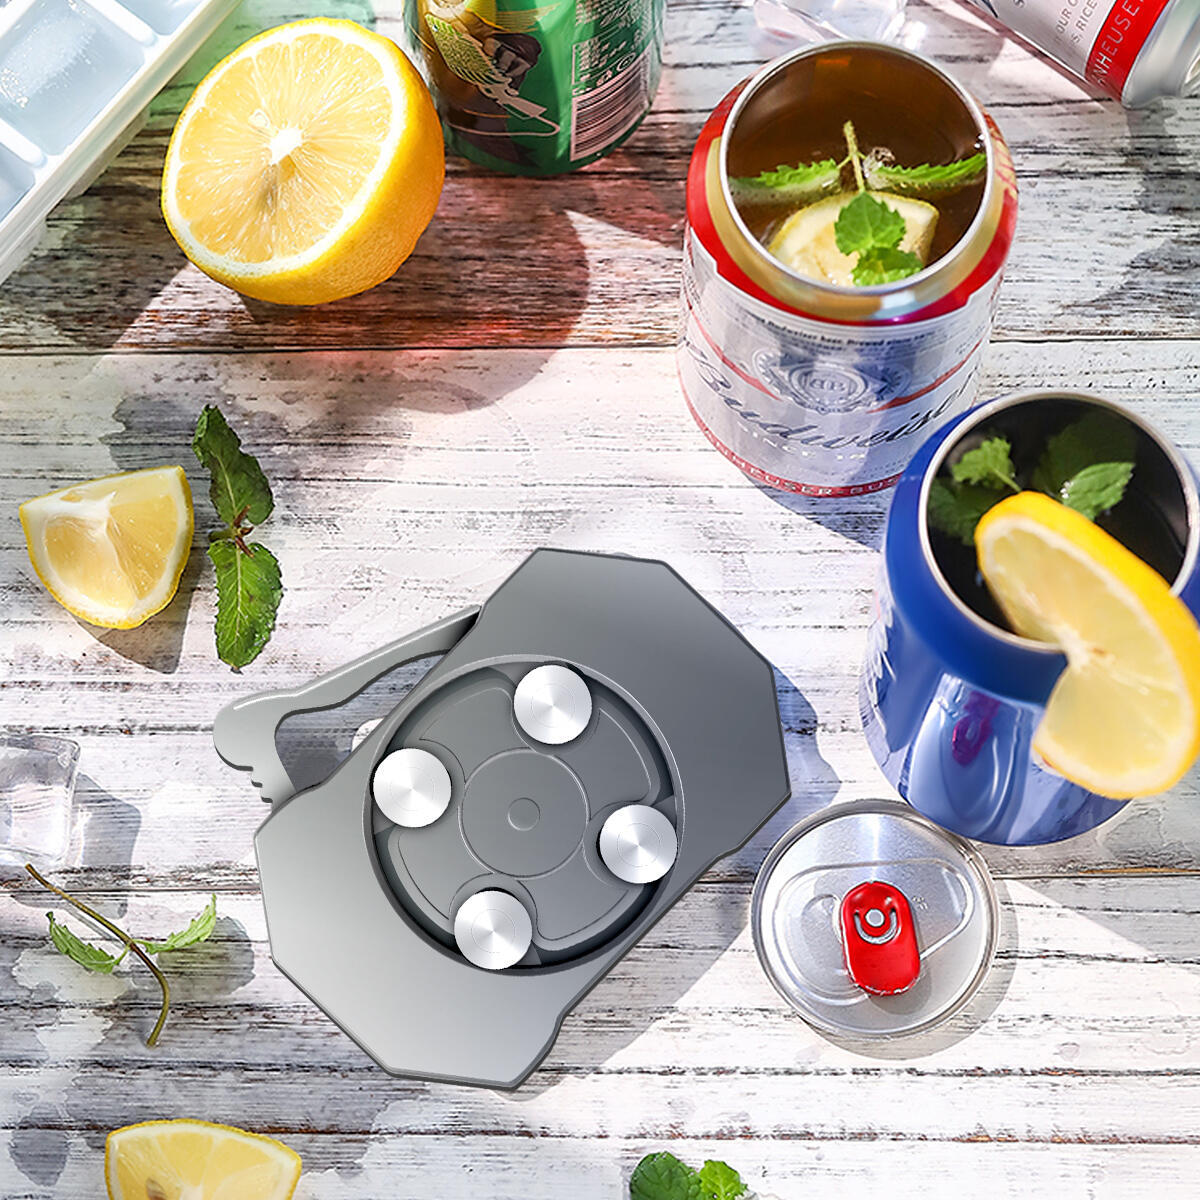 Hand-hold Can Opener, Smooth Edge, Effortless Remove Lid, Manual Can Opener for Canned Drinks, Useful Tools for Home and Bar, Great for Camping, Traveling …